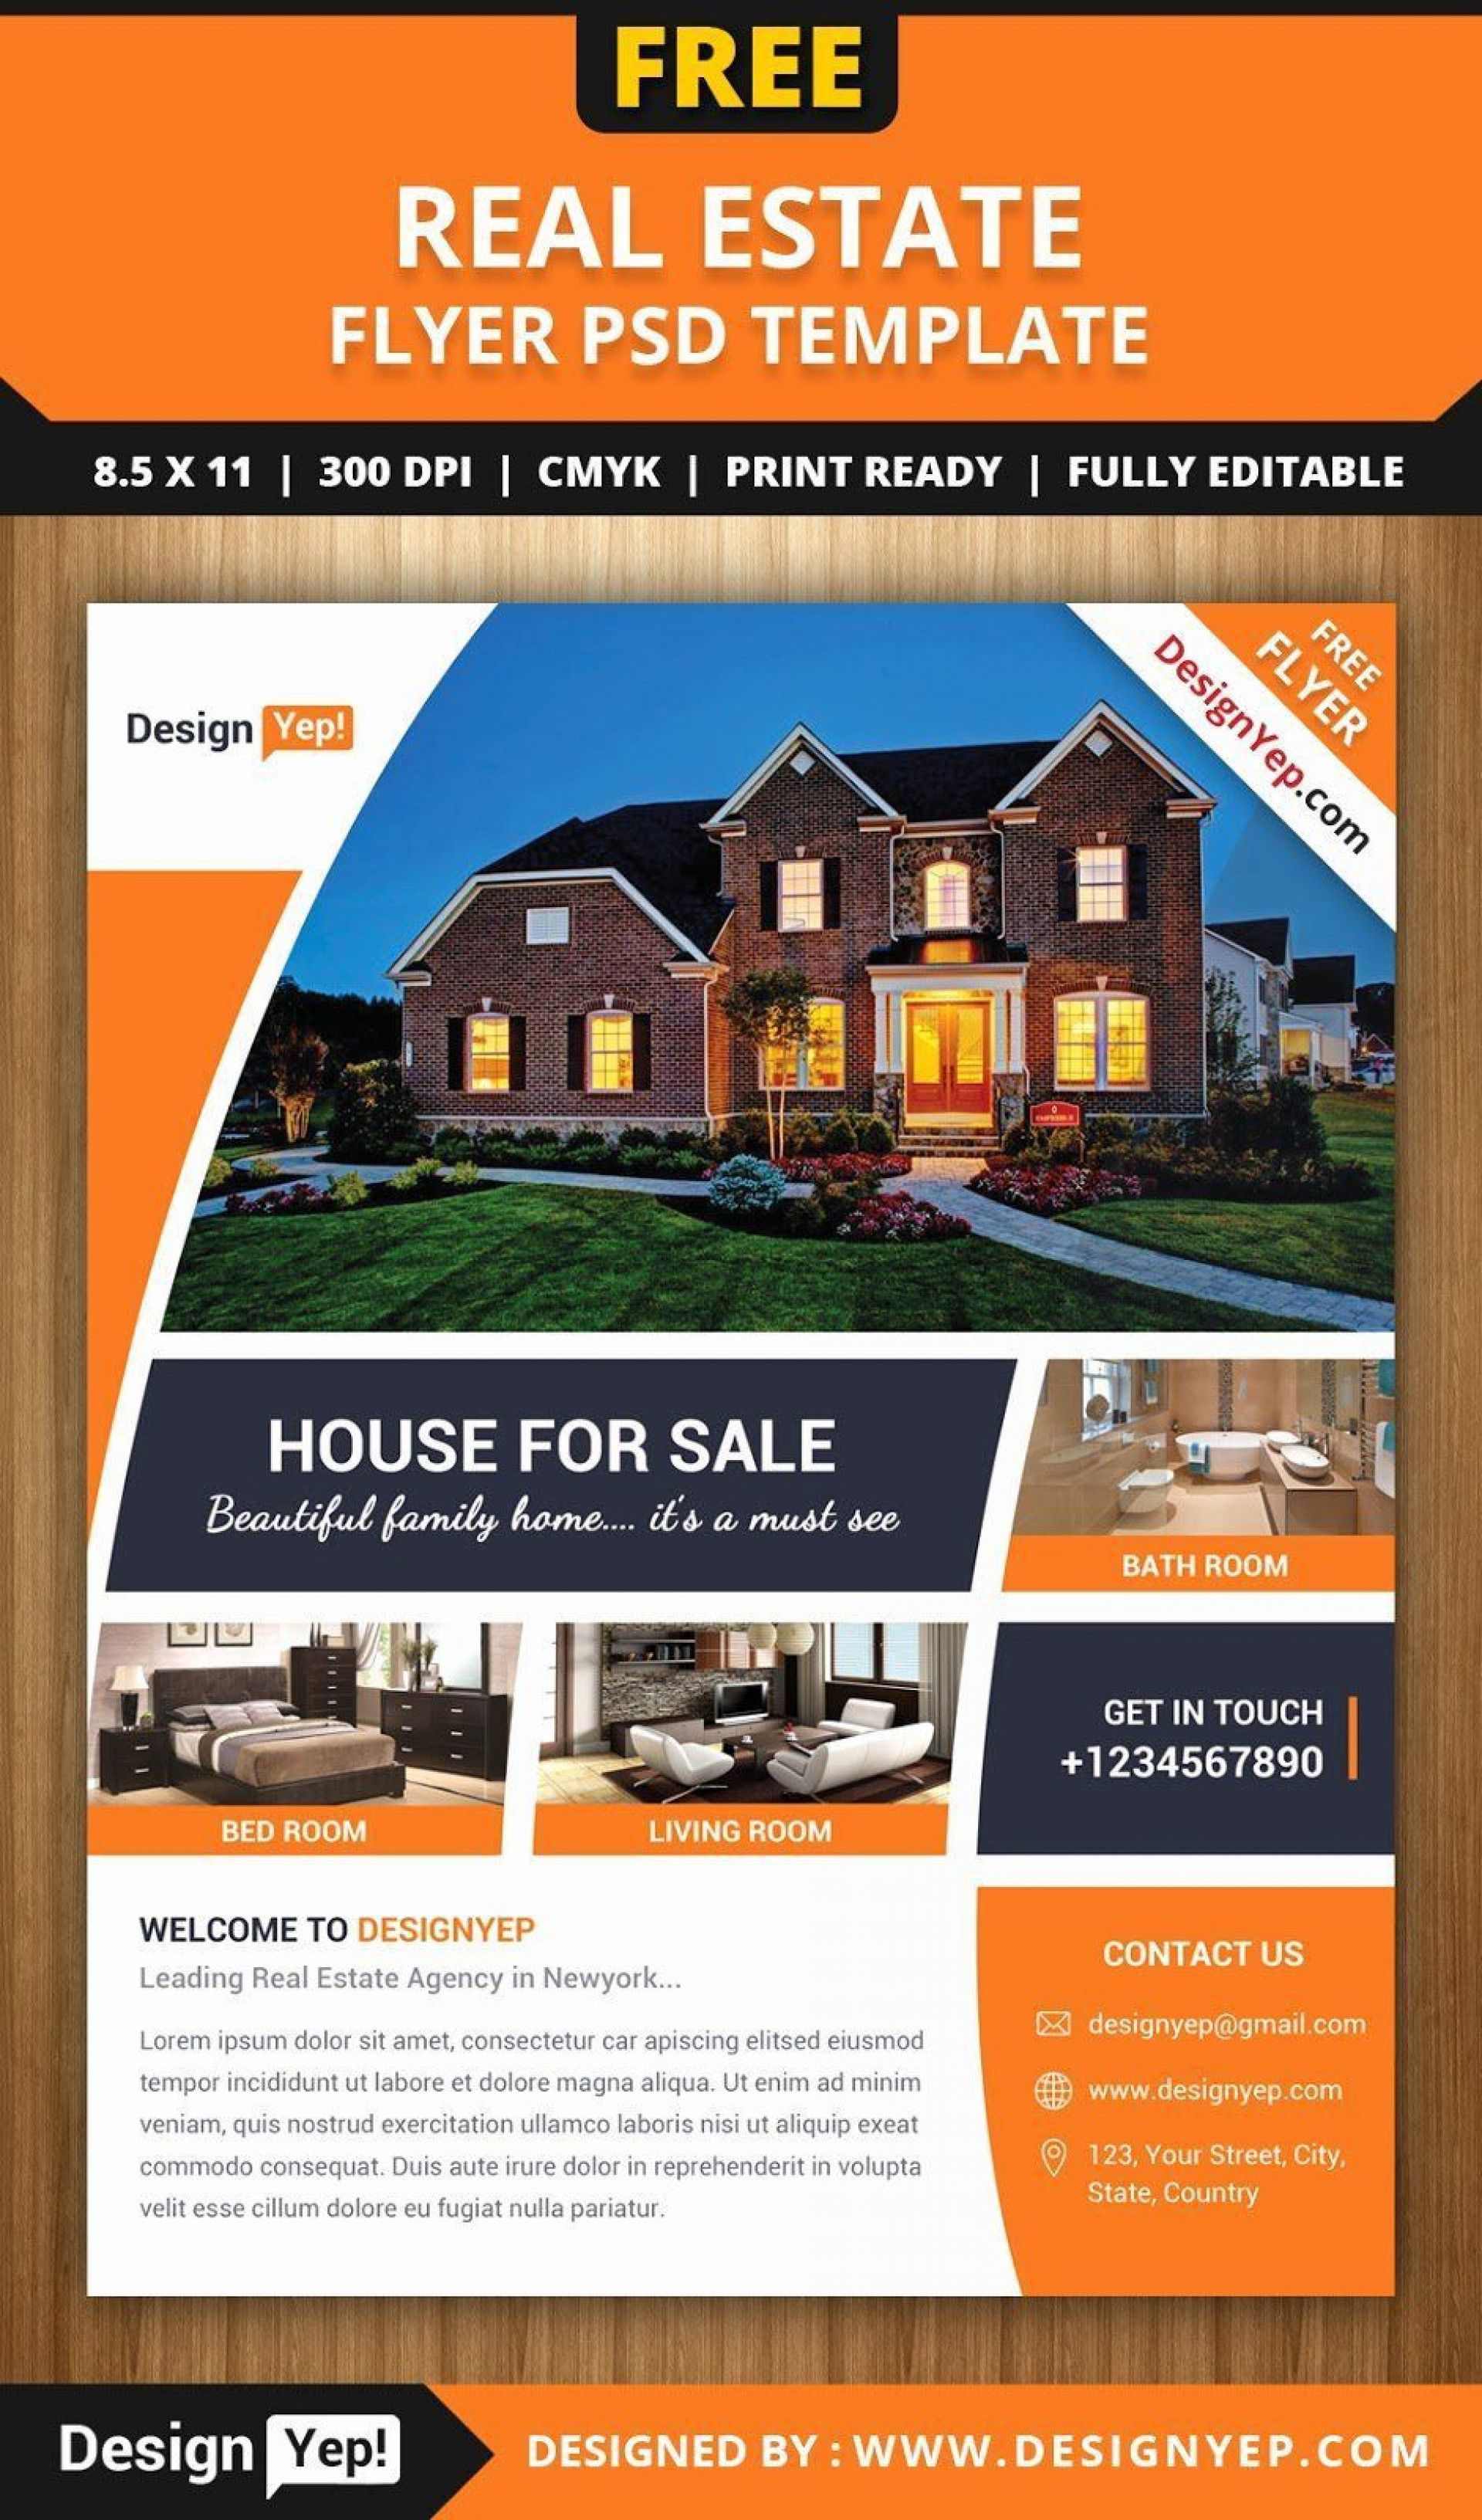 000 Sensational Real Estate Flyer Template Free Concept  Publisher Commercial Pdf DownloadFull